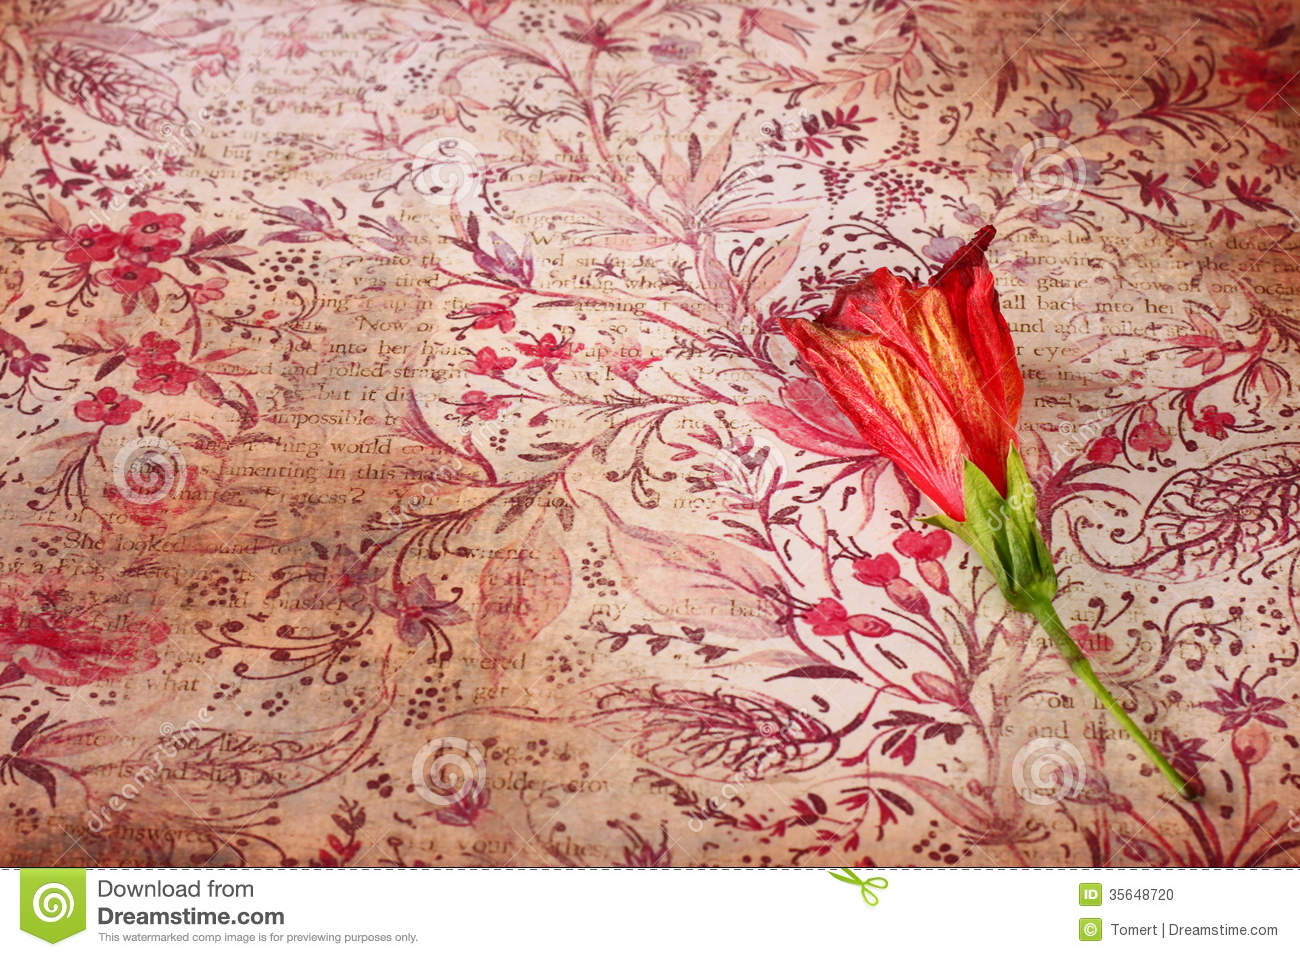 Computer 3d Wallpaper Download Red Flower On Vintage Grunge Background Stock Photo